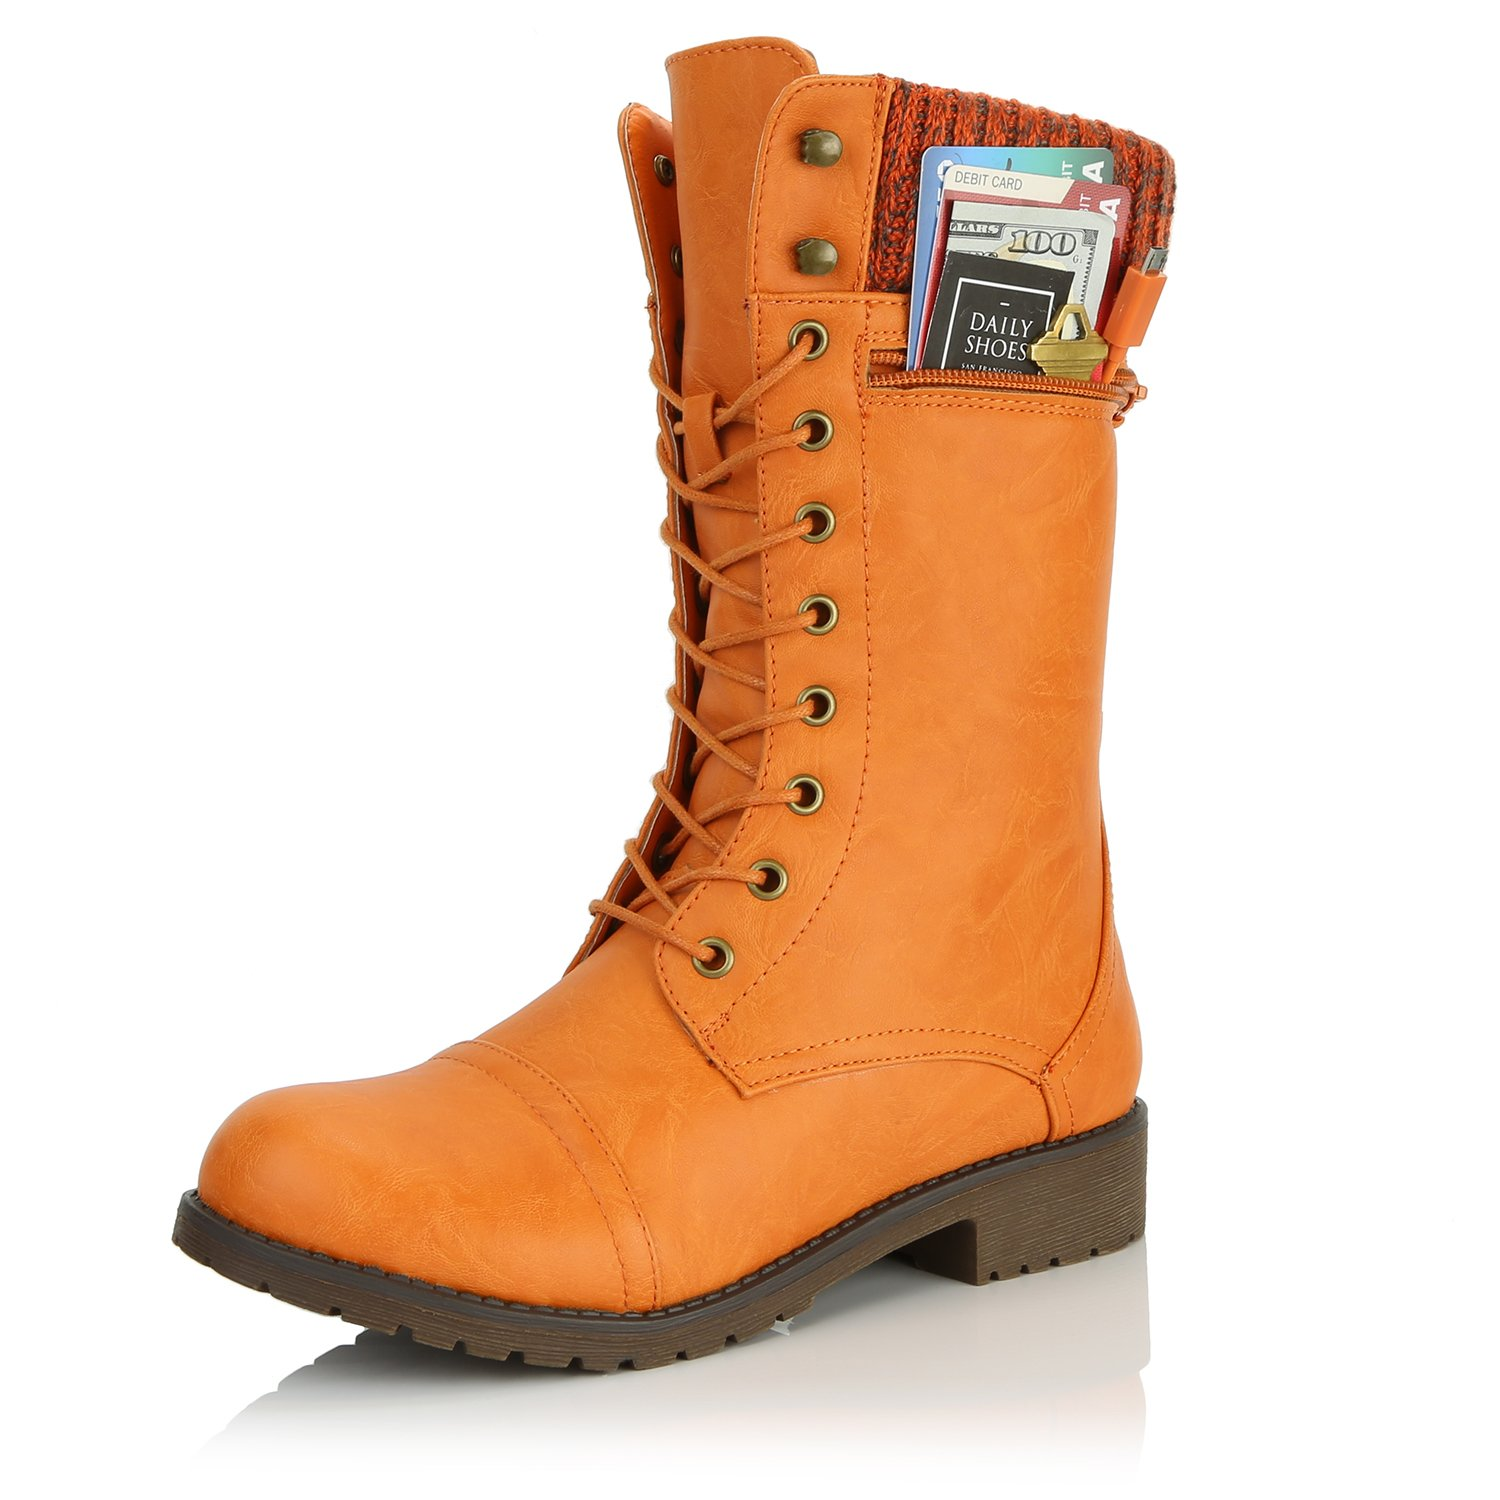 DailyShoes Women's Combat Style Lace up Ankle Bootie Round Toe Military Knit Credit Card Knife Money Wallet Pocket Boots, Orange Pu, 7.5